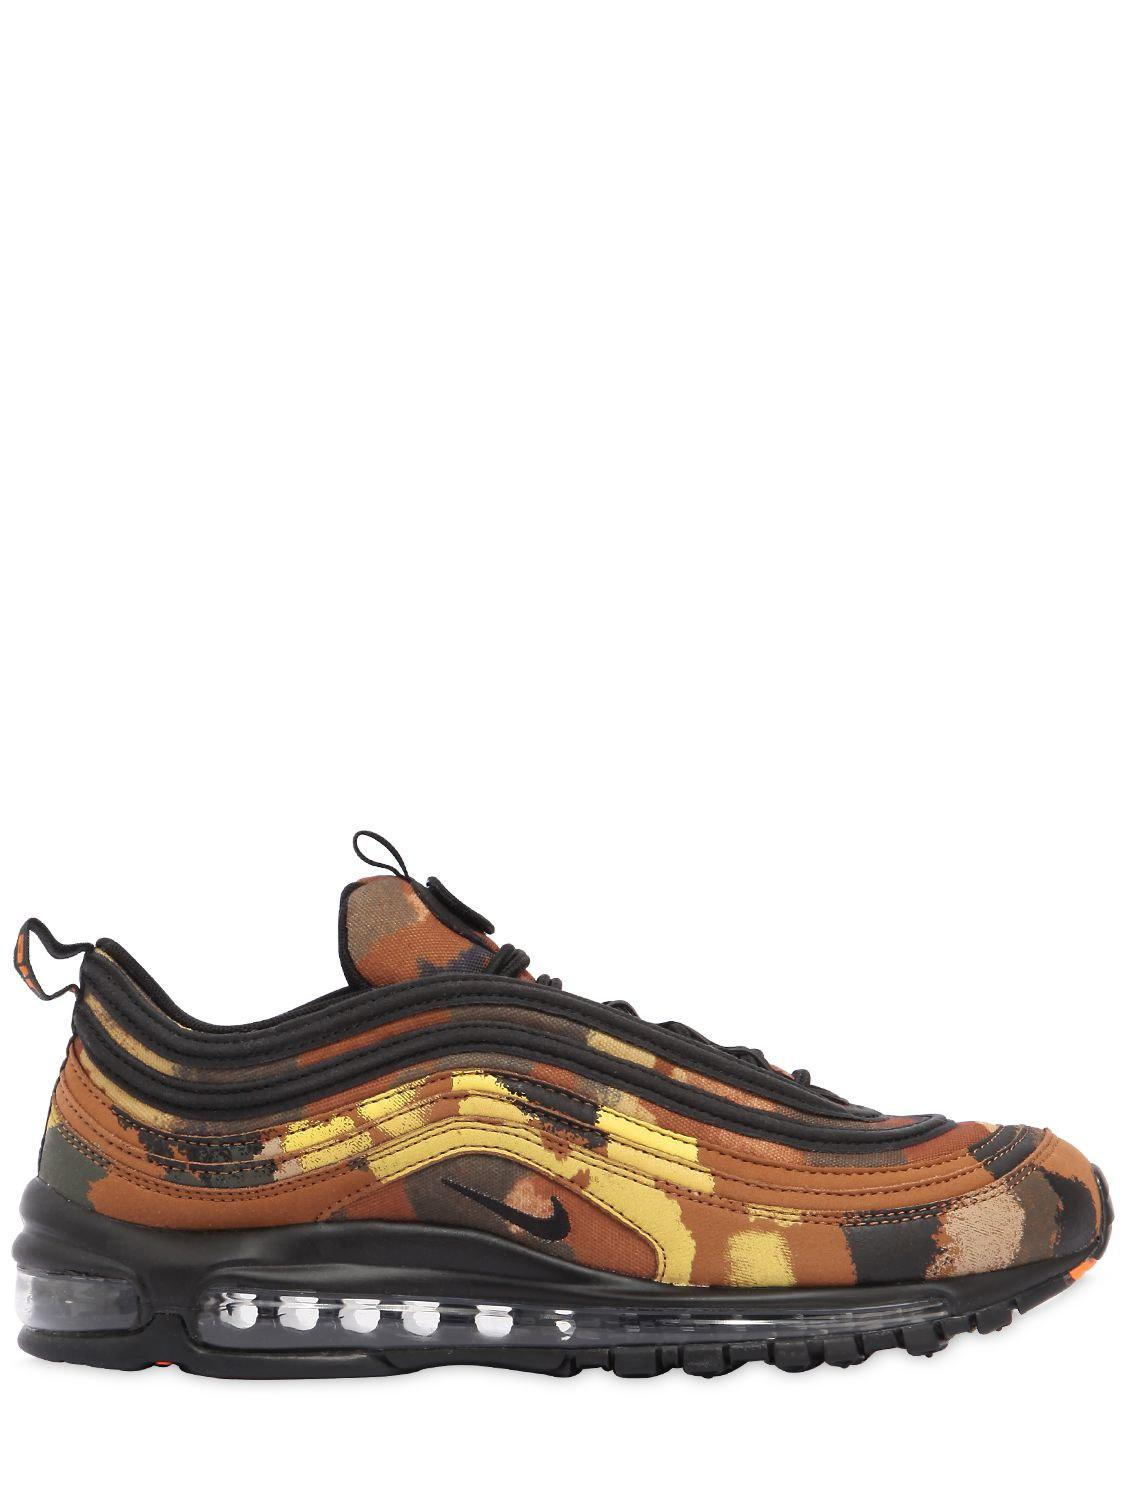 Nike. Men's Air Max 97 Camo Pack Italy Trainers